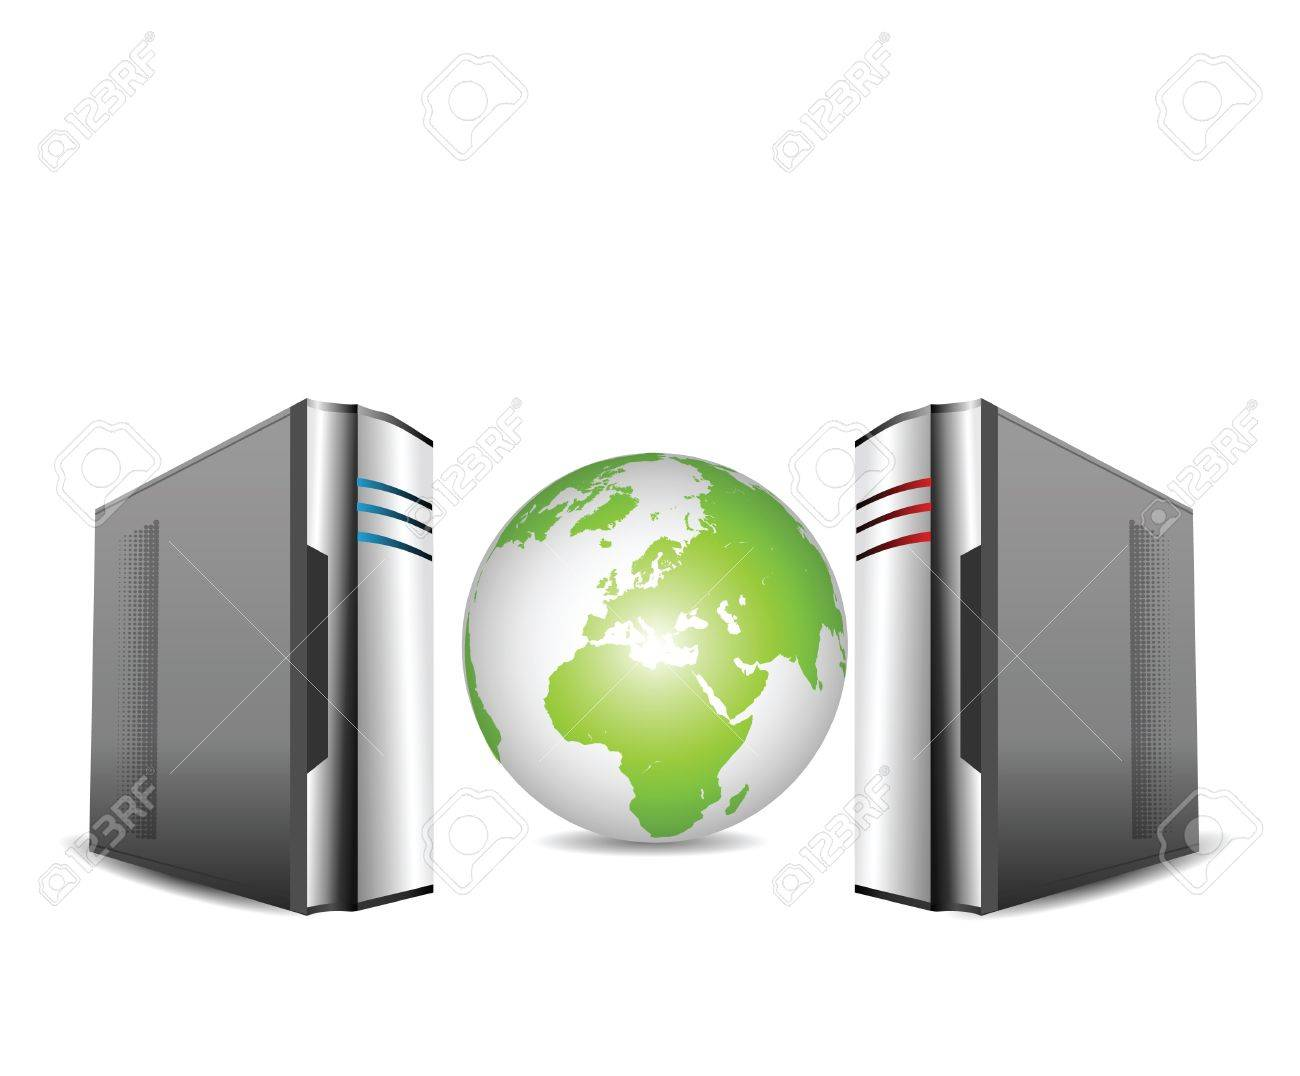 Computer Servers Isolated on White  with earth globe Stock Photo - 11648090